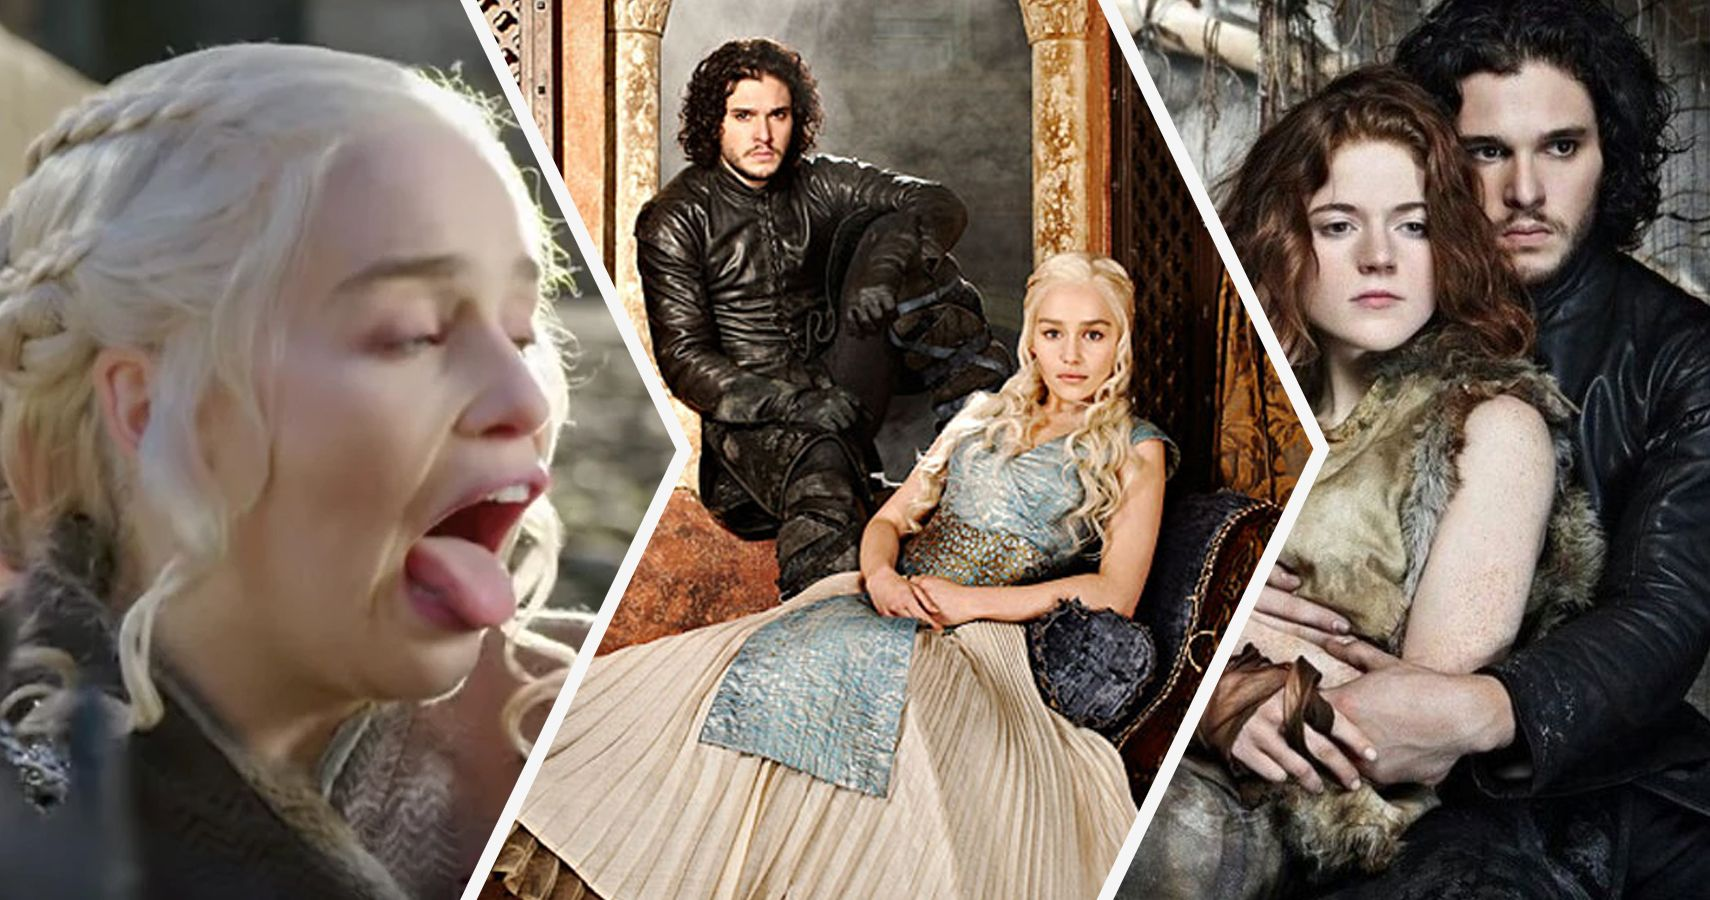 game of thrones 25 things that make no sense about jon snow and daenerys 39 relationship. Black Bedroom Furniture Sets. Home Design Ideas